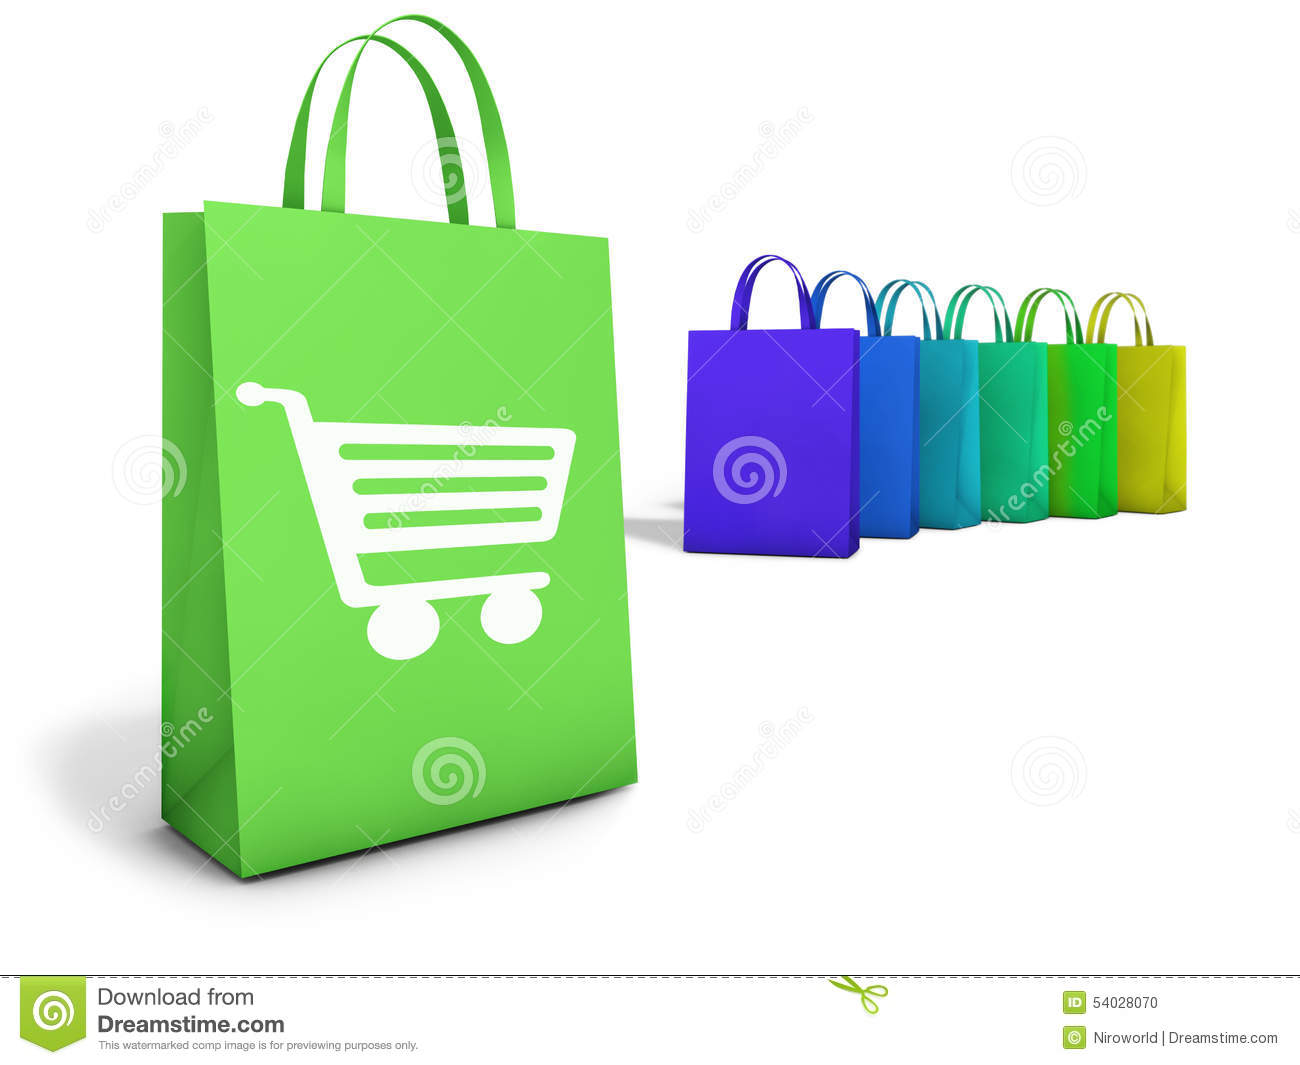 Shopping Bags Online Ecommerce Concept Stock Photo - Image: 54028070